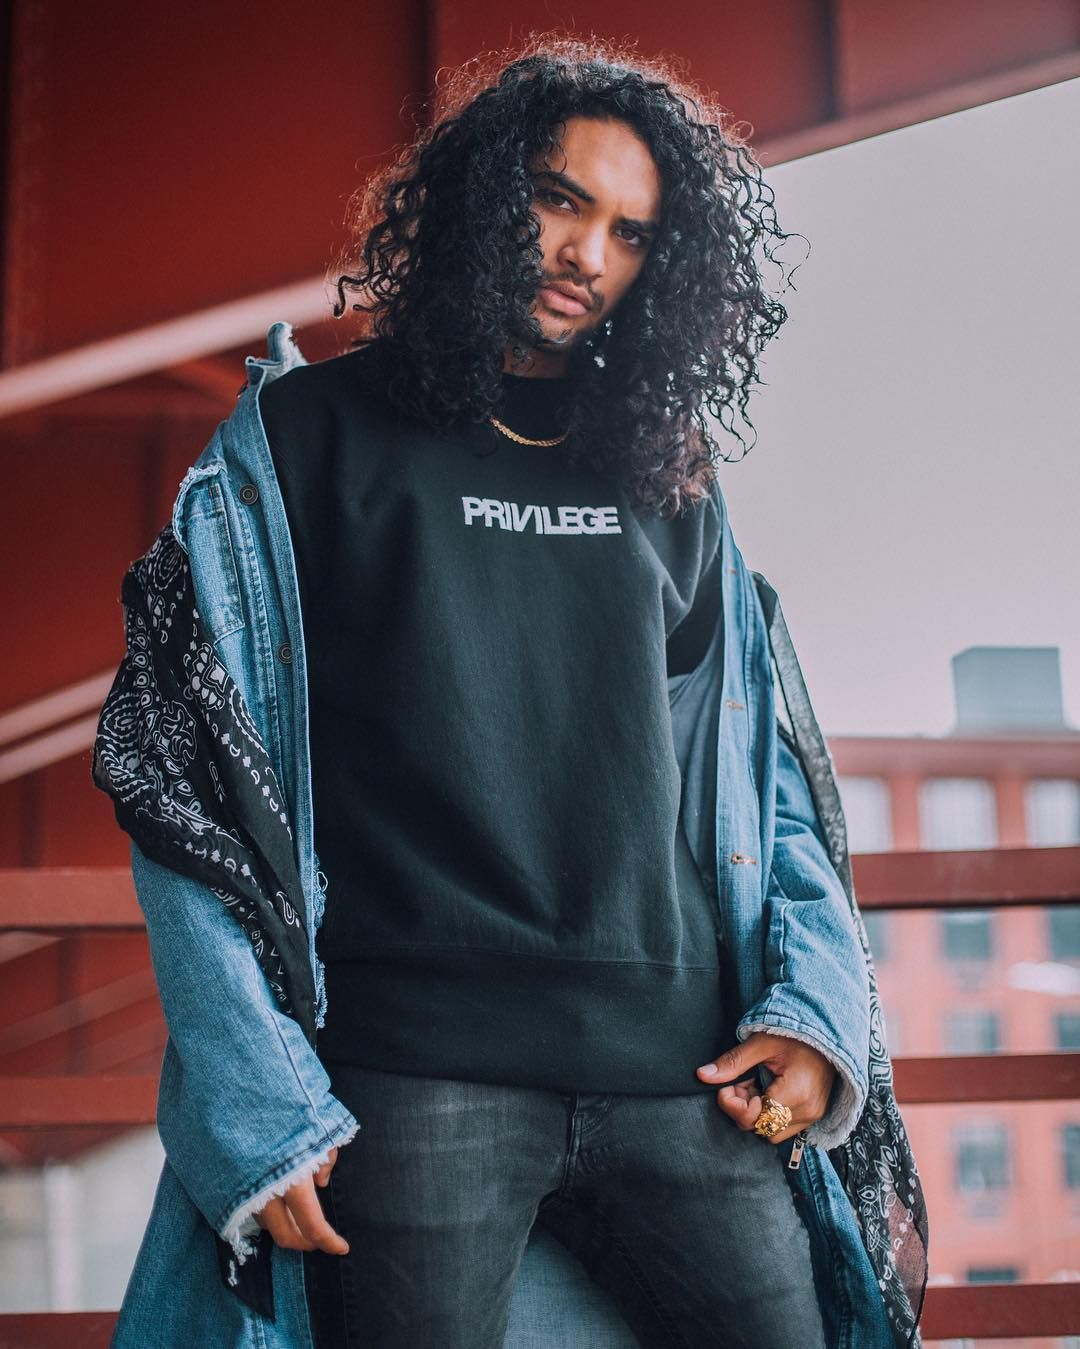 Long curly hair for men long hair inspiration long natural hair - Long Curly Hair For Men Inspiration Curls Rizos Free The Curls